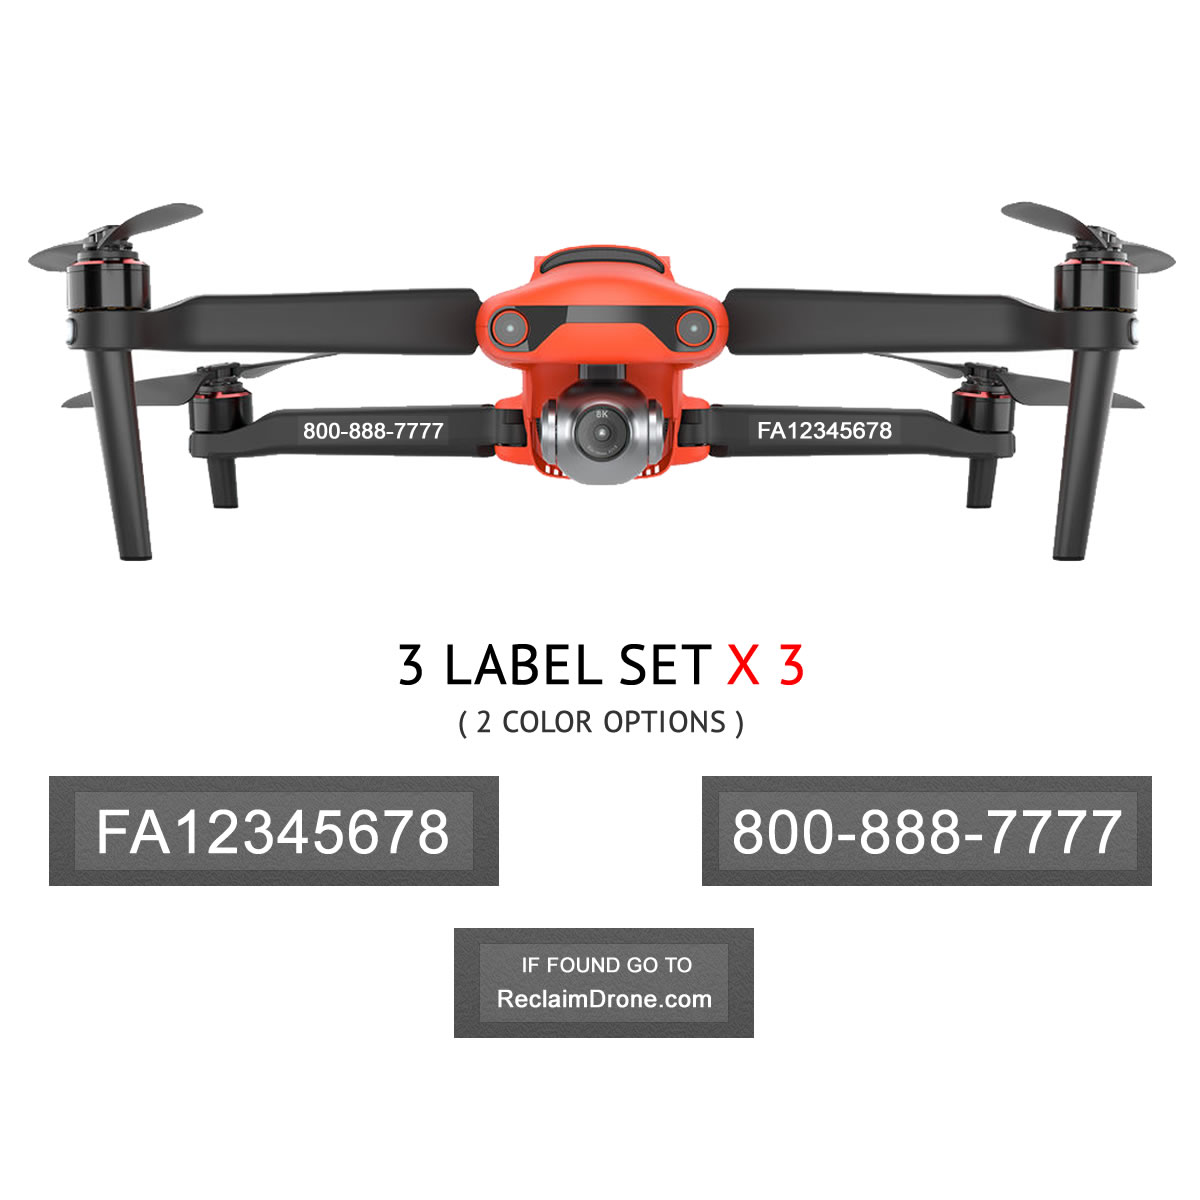 Autel EVO 2 – FAA Registration Labels, FAA and Phone number in white on clear background